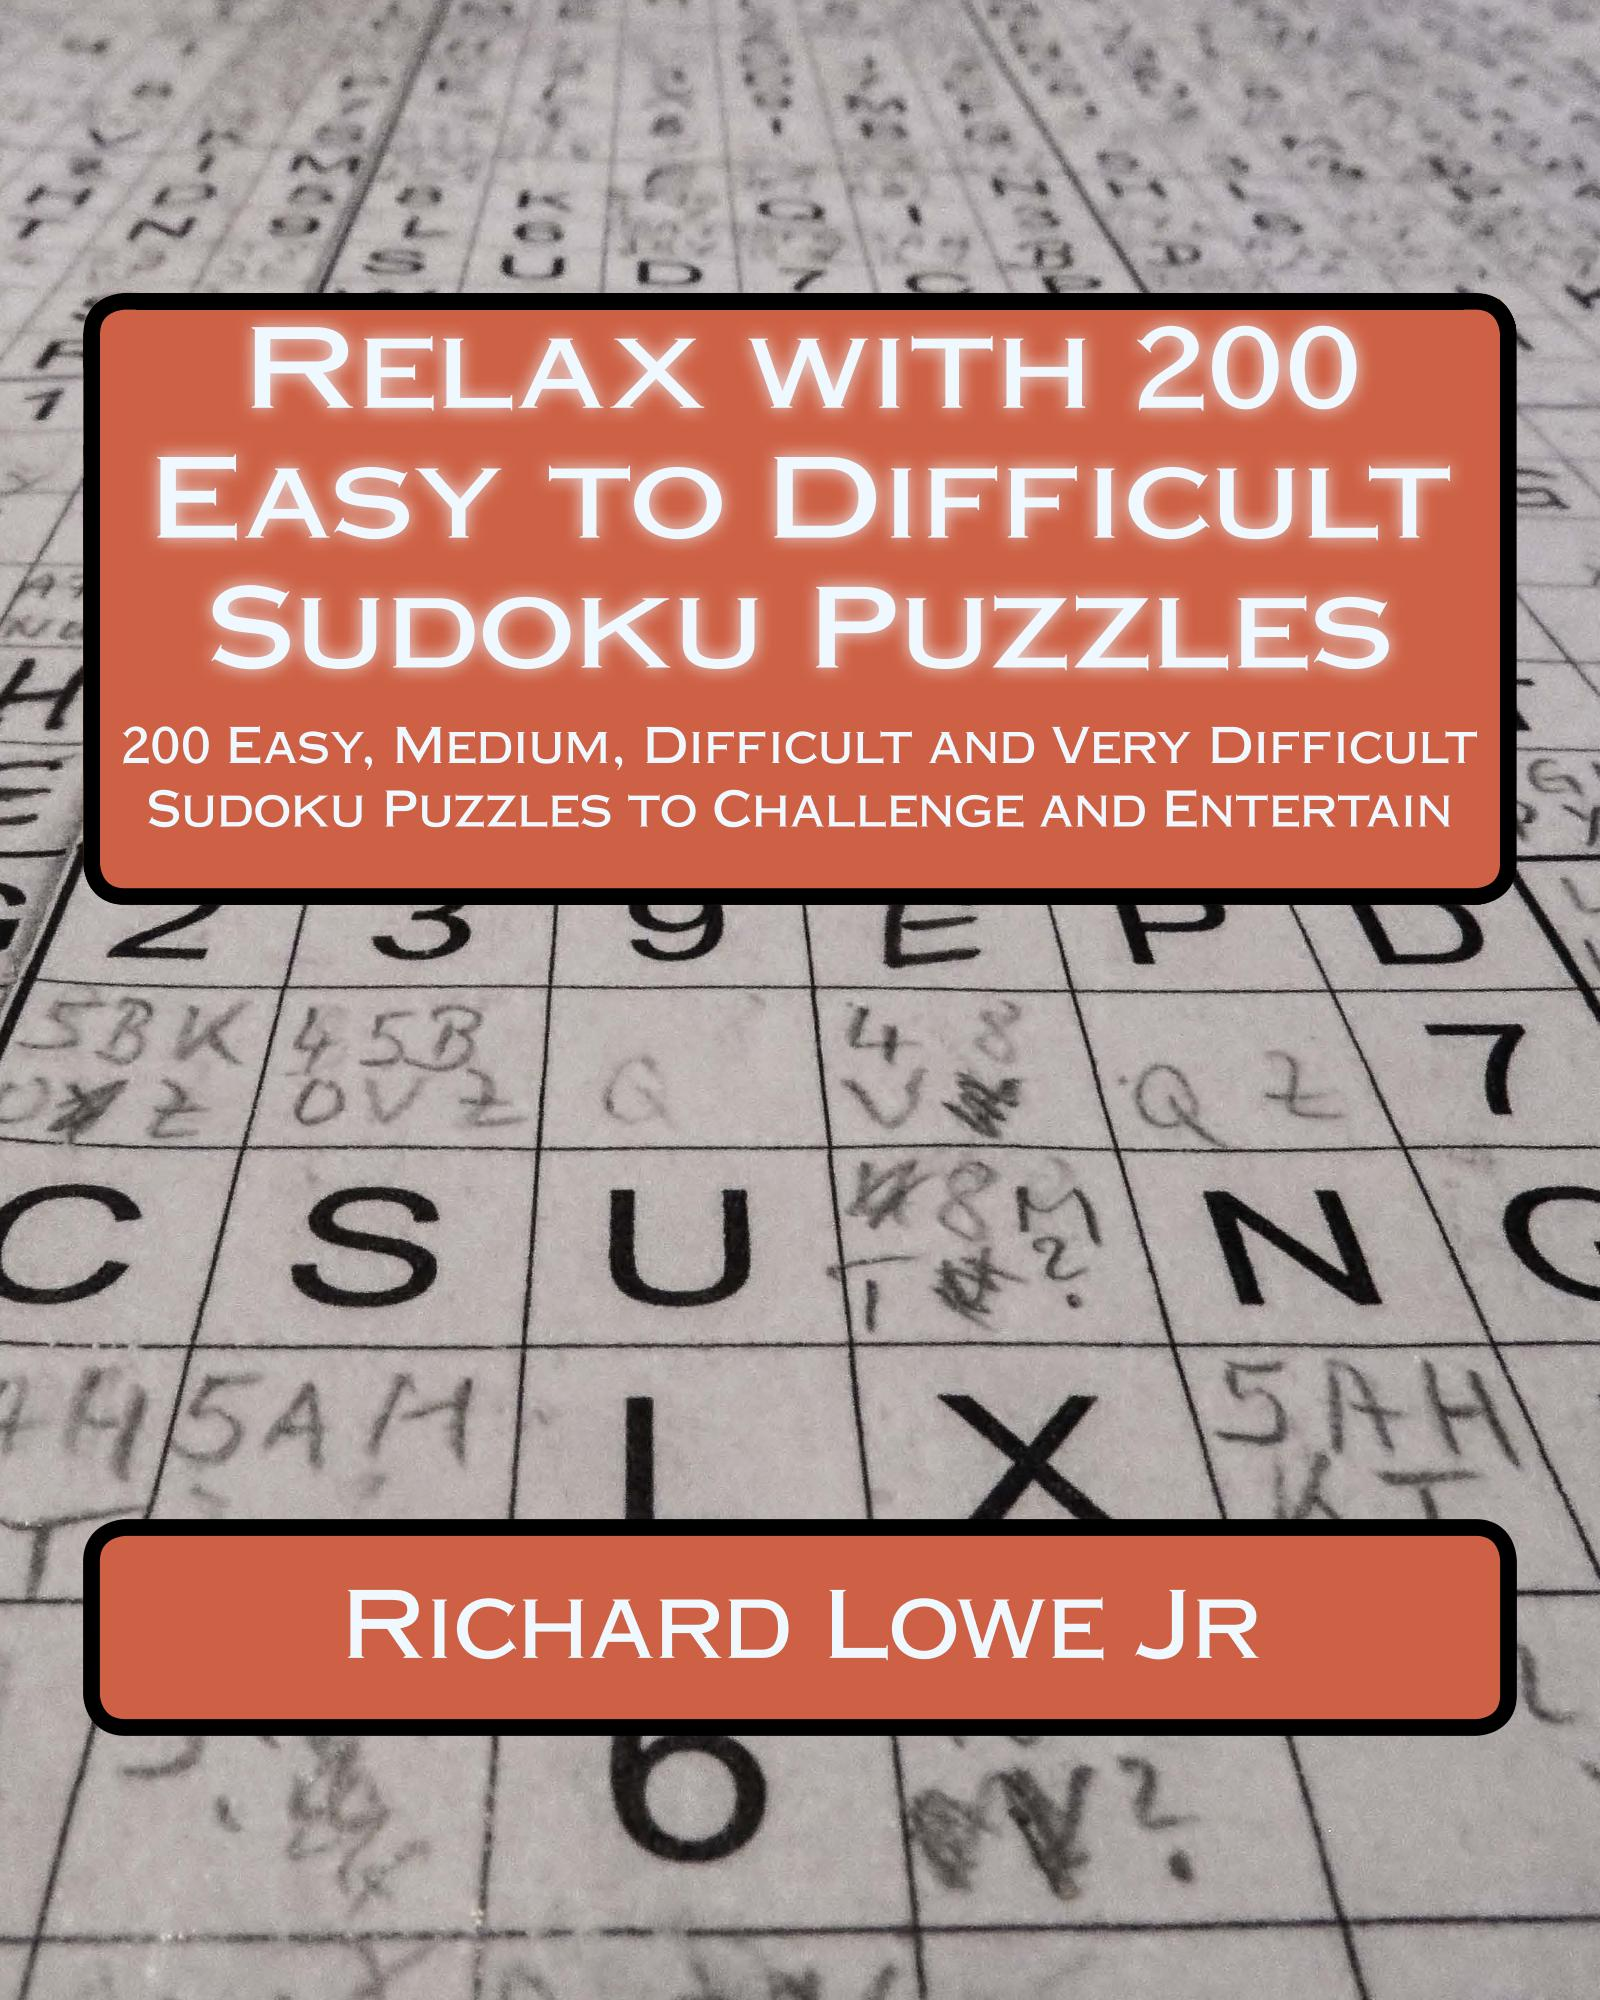 Relax With 200 Easy To Difficult Sudoku Puzzles Richard